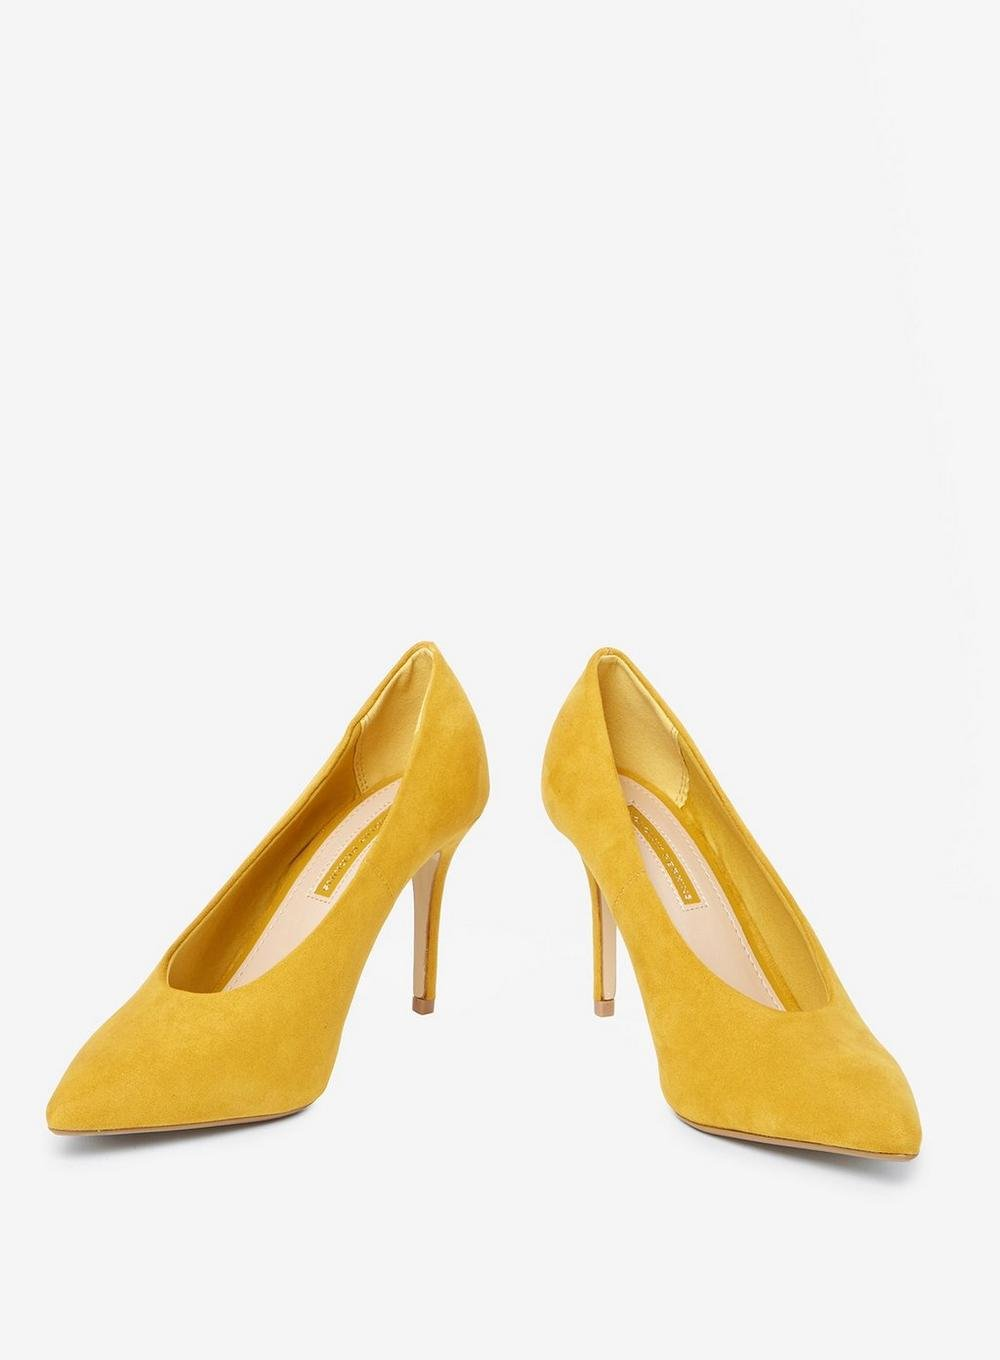 098889d71650 Lyst - Dorothy Perkins Yellow 'gatsby' Court Shoes in Yellow